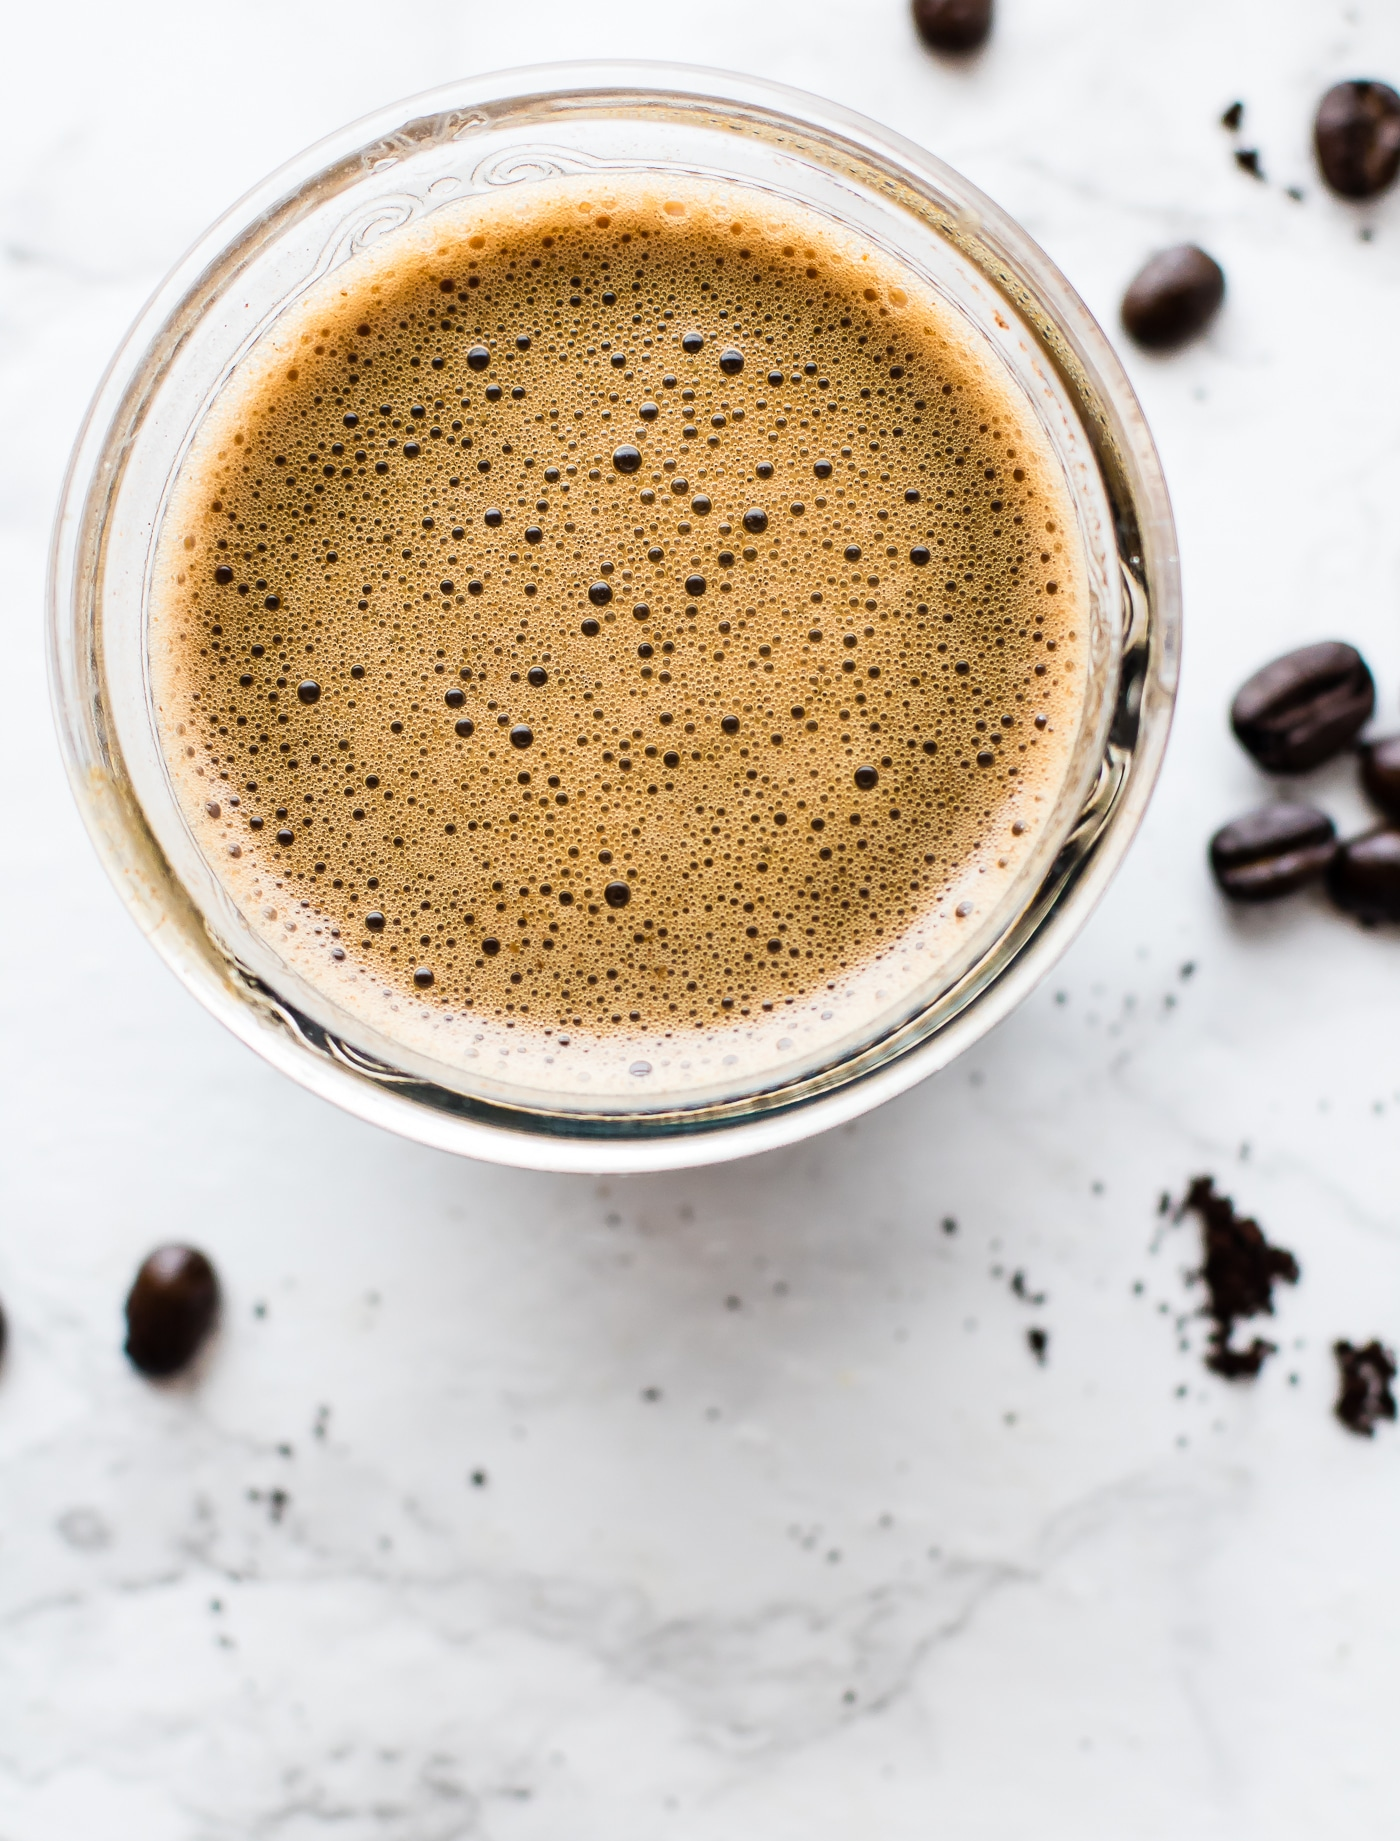 A vegan hazelnut coffee recipe with a cultural twist! Homemade Turkish Style vegan hazelnut coffee recipe. Quick to make on the stove top and dairy free.